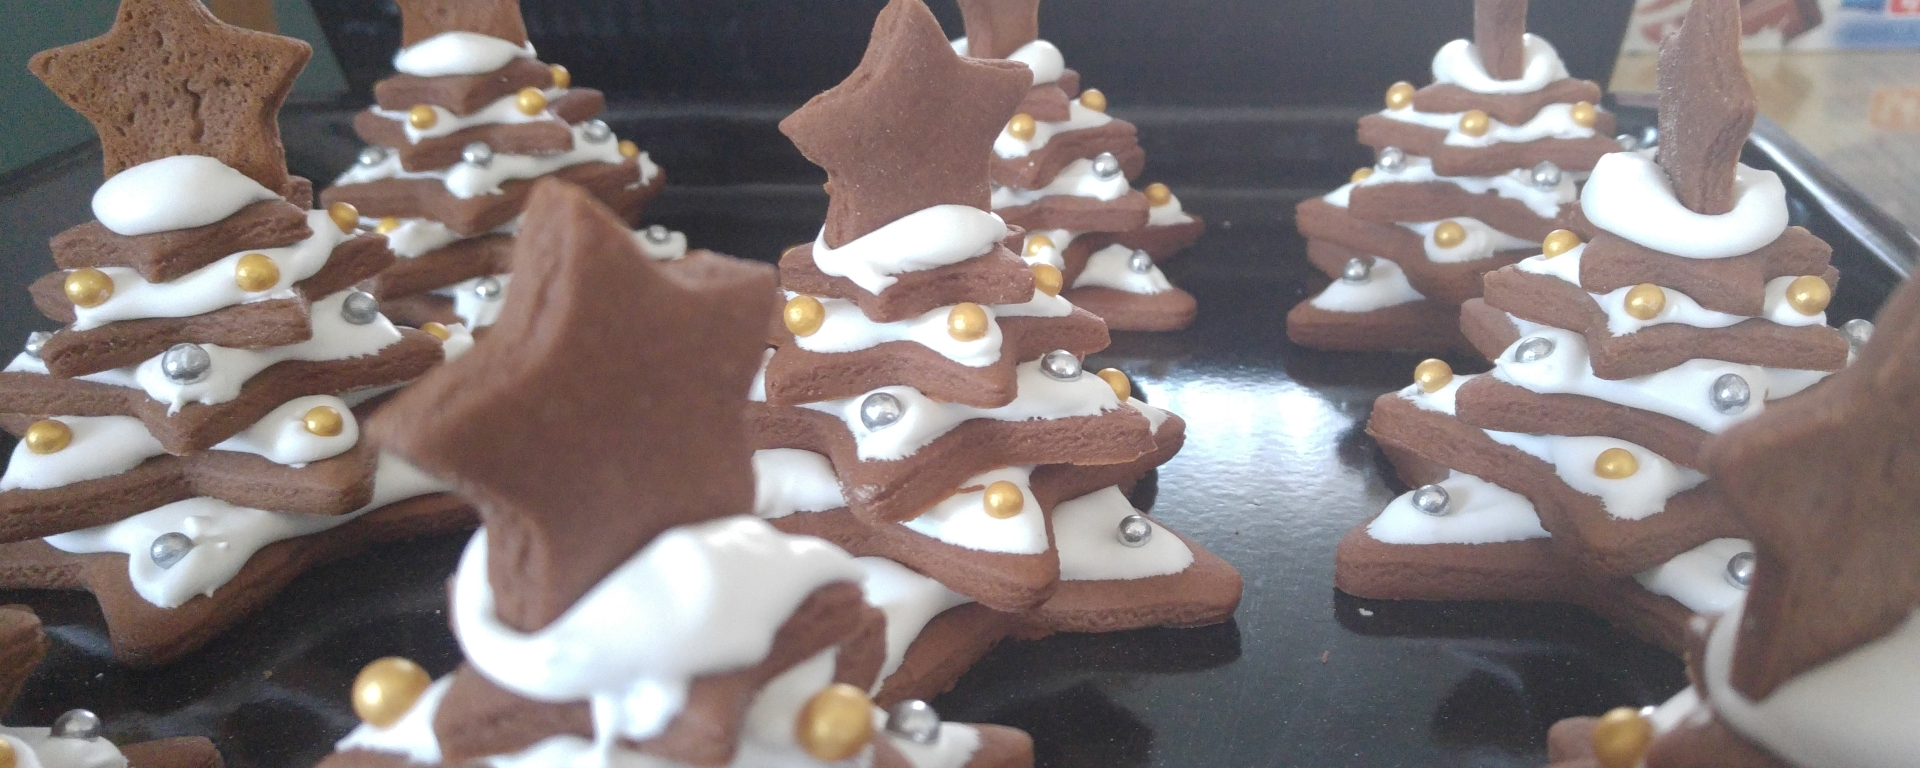 A whole batch of completed gingerbread Christmas trees with icing as snow